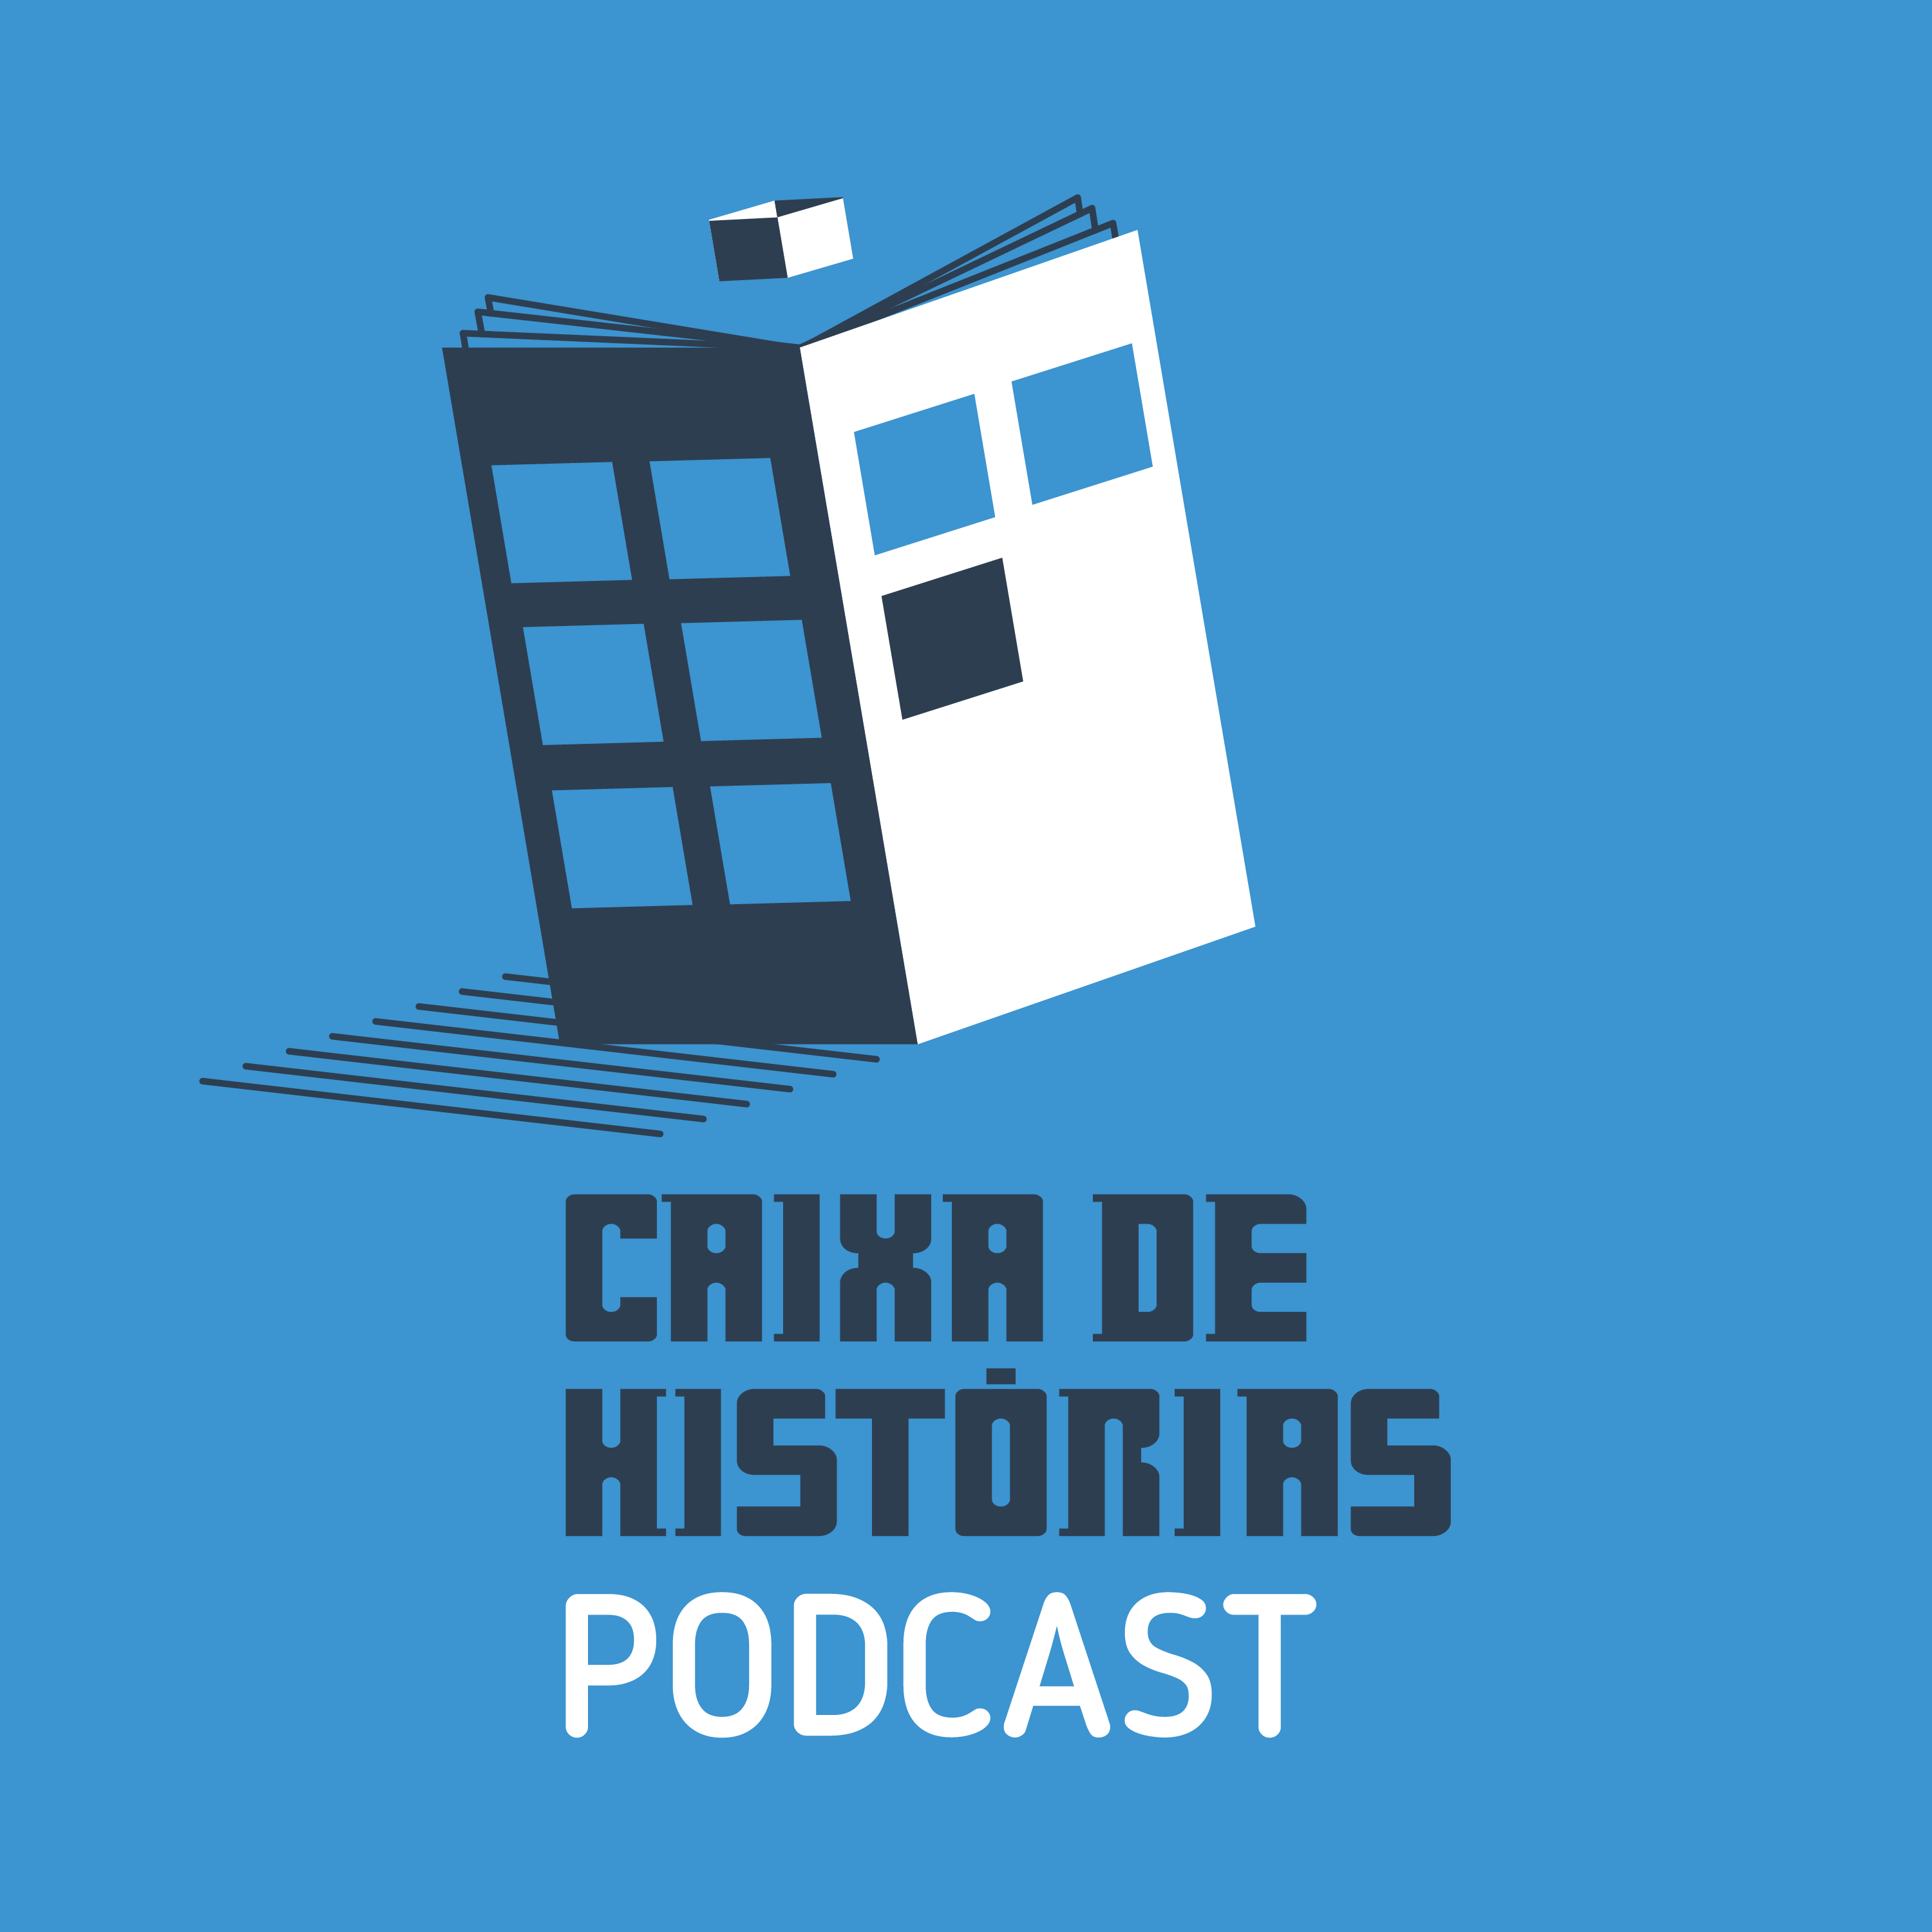 Capa do podcast Caixa de Histórias